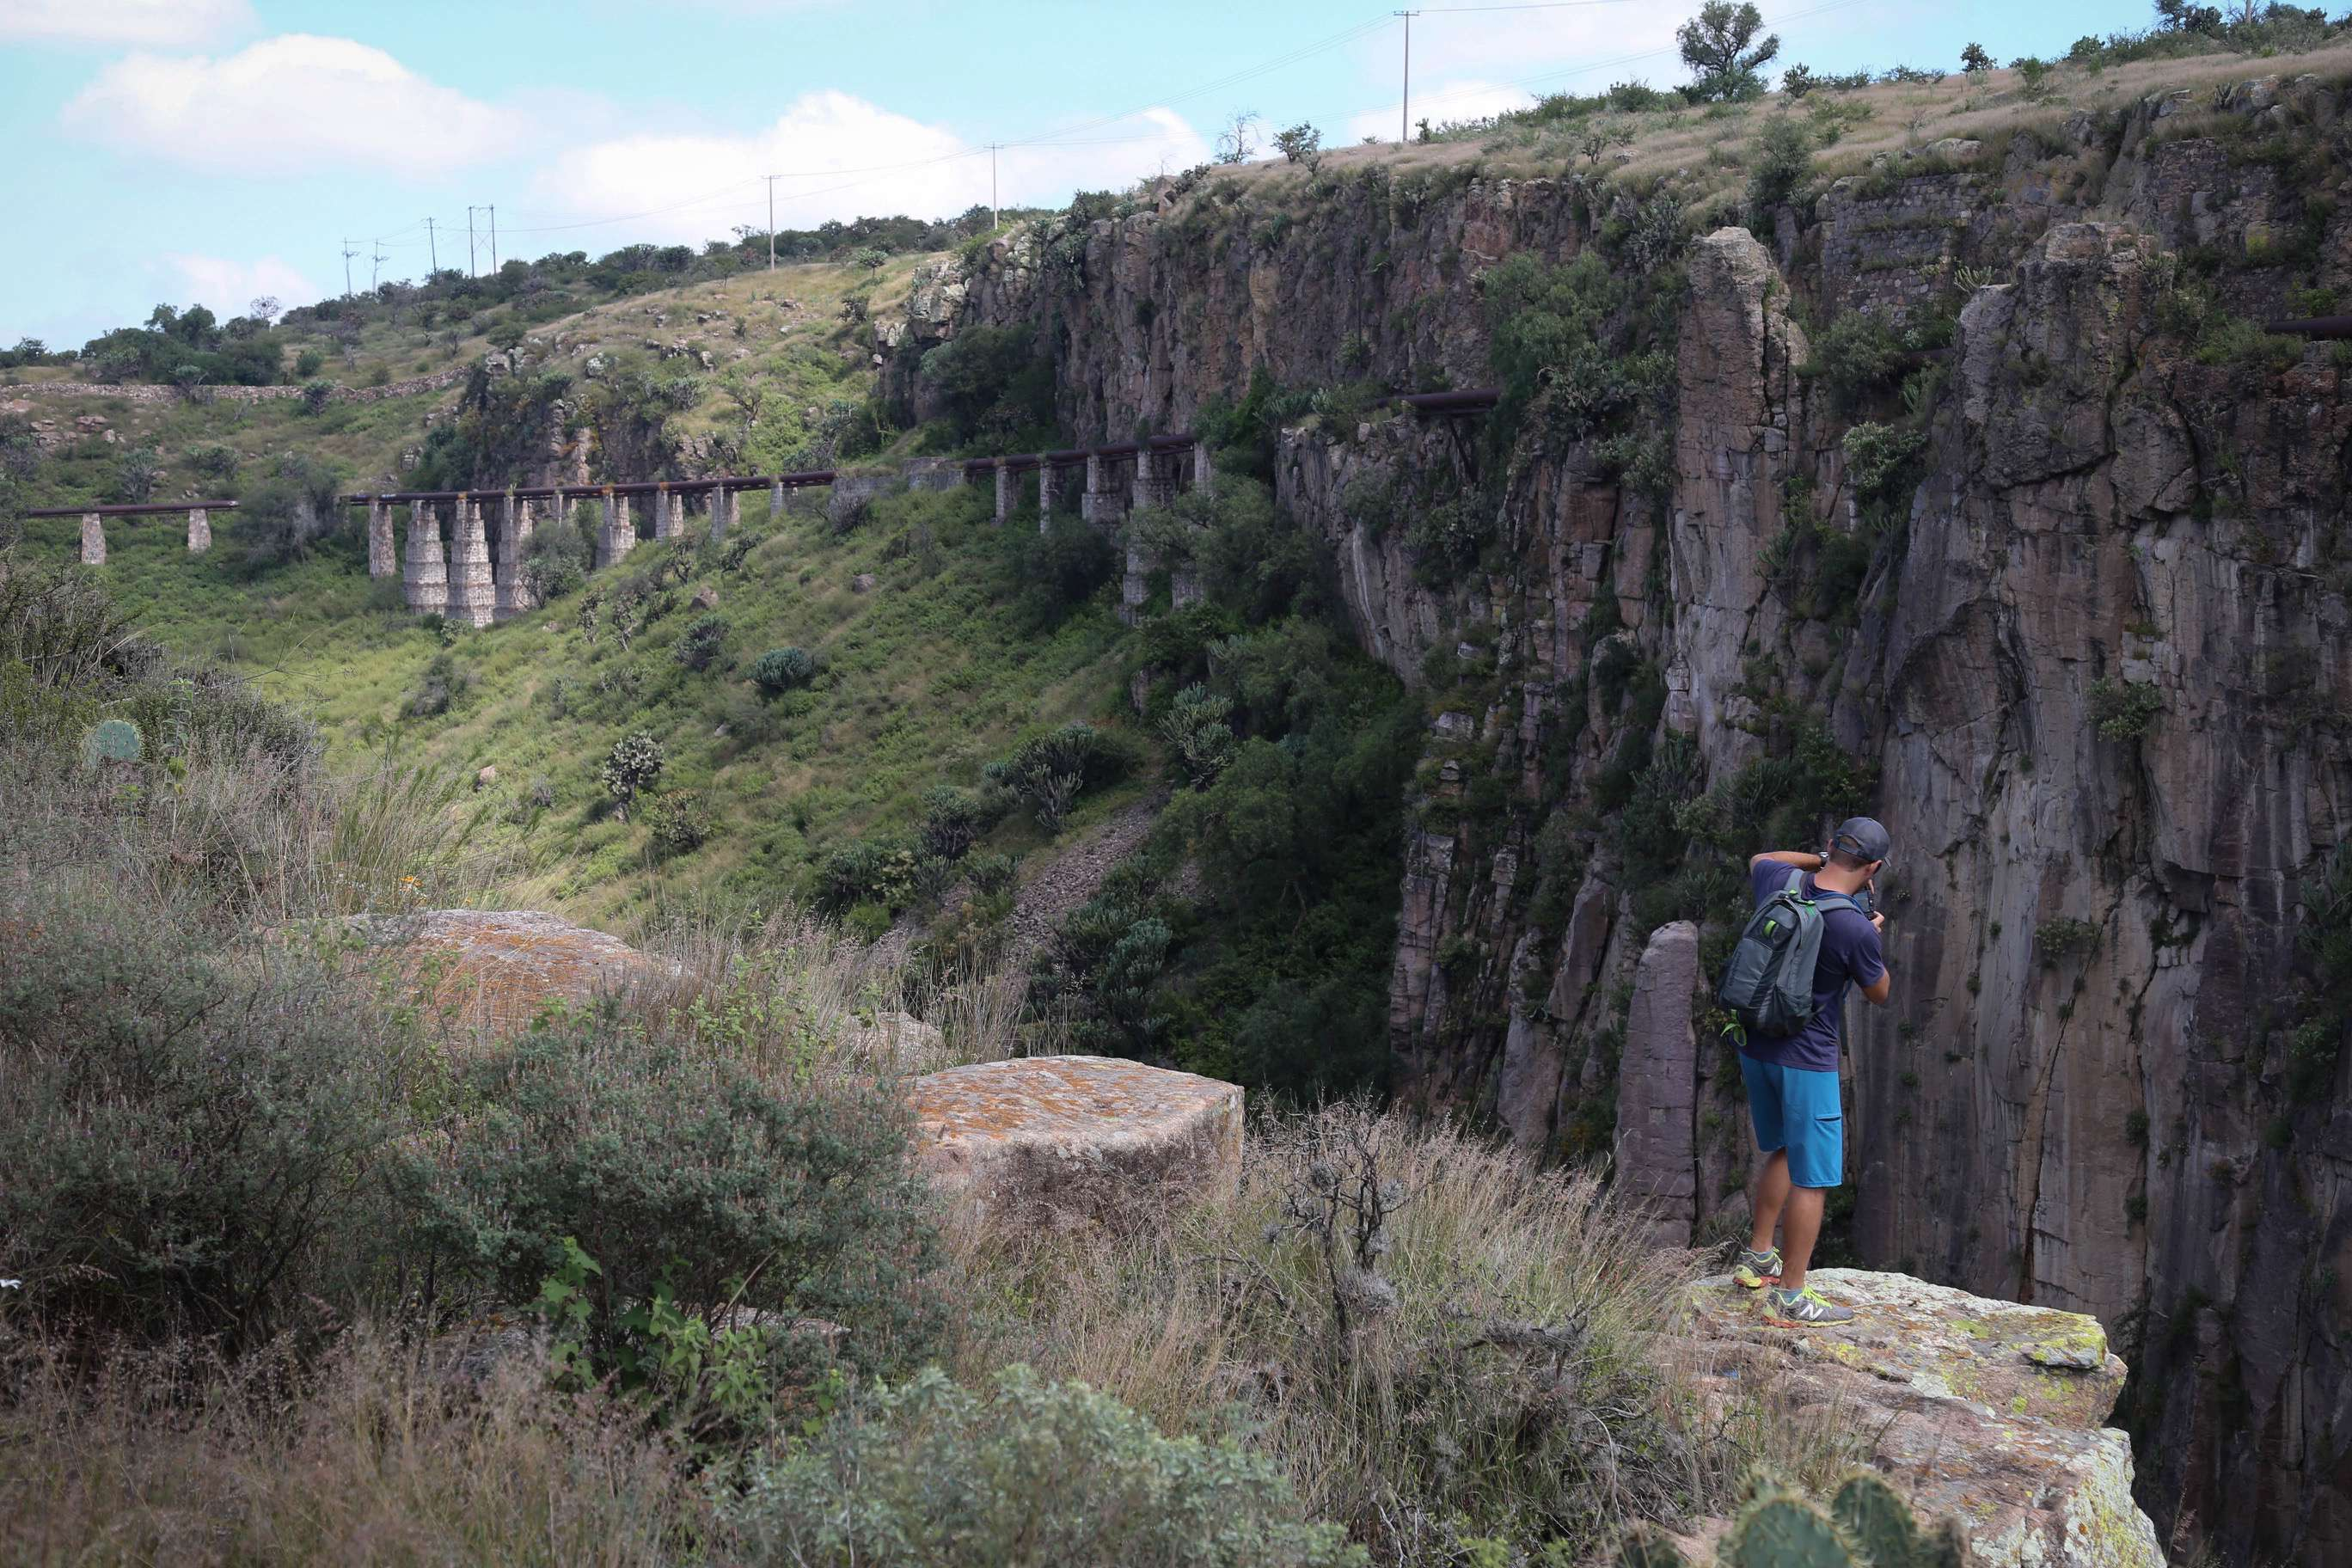 A visitor ventures out for a shot of the canyon below. The aqueduct in the distance carried water to the now-reuprposed factory in San Miguel de Allende.